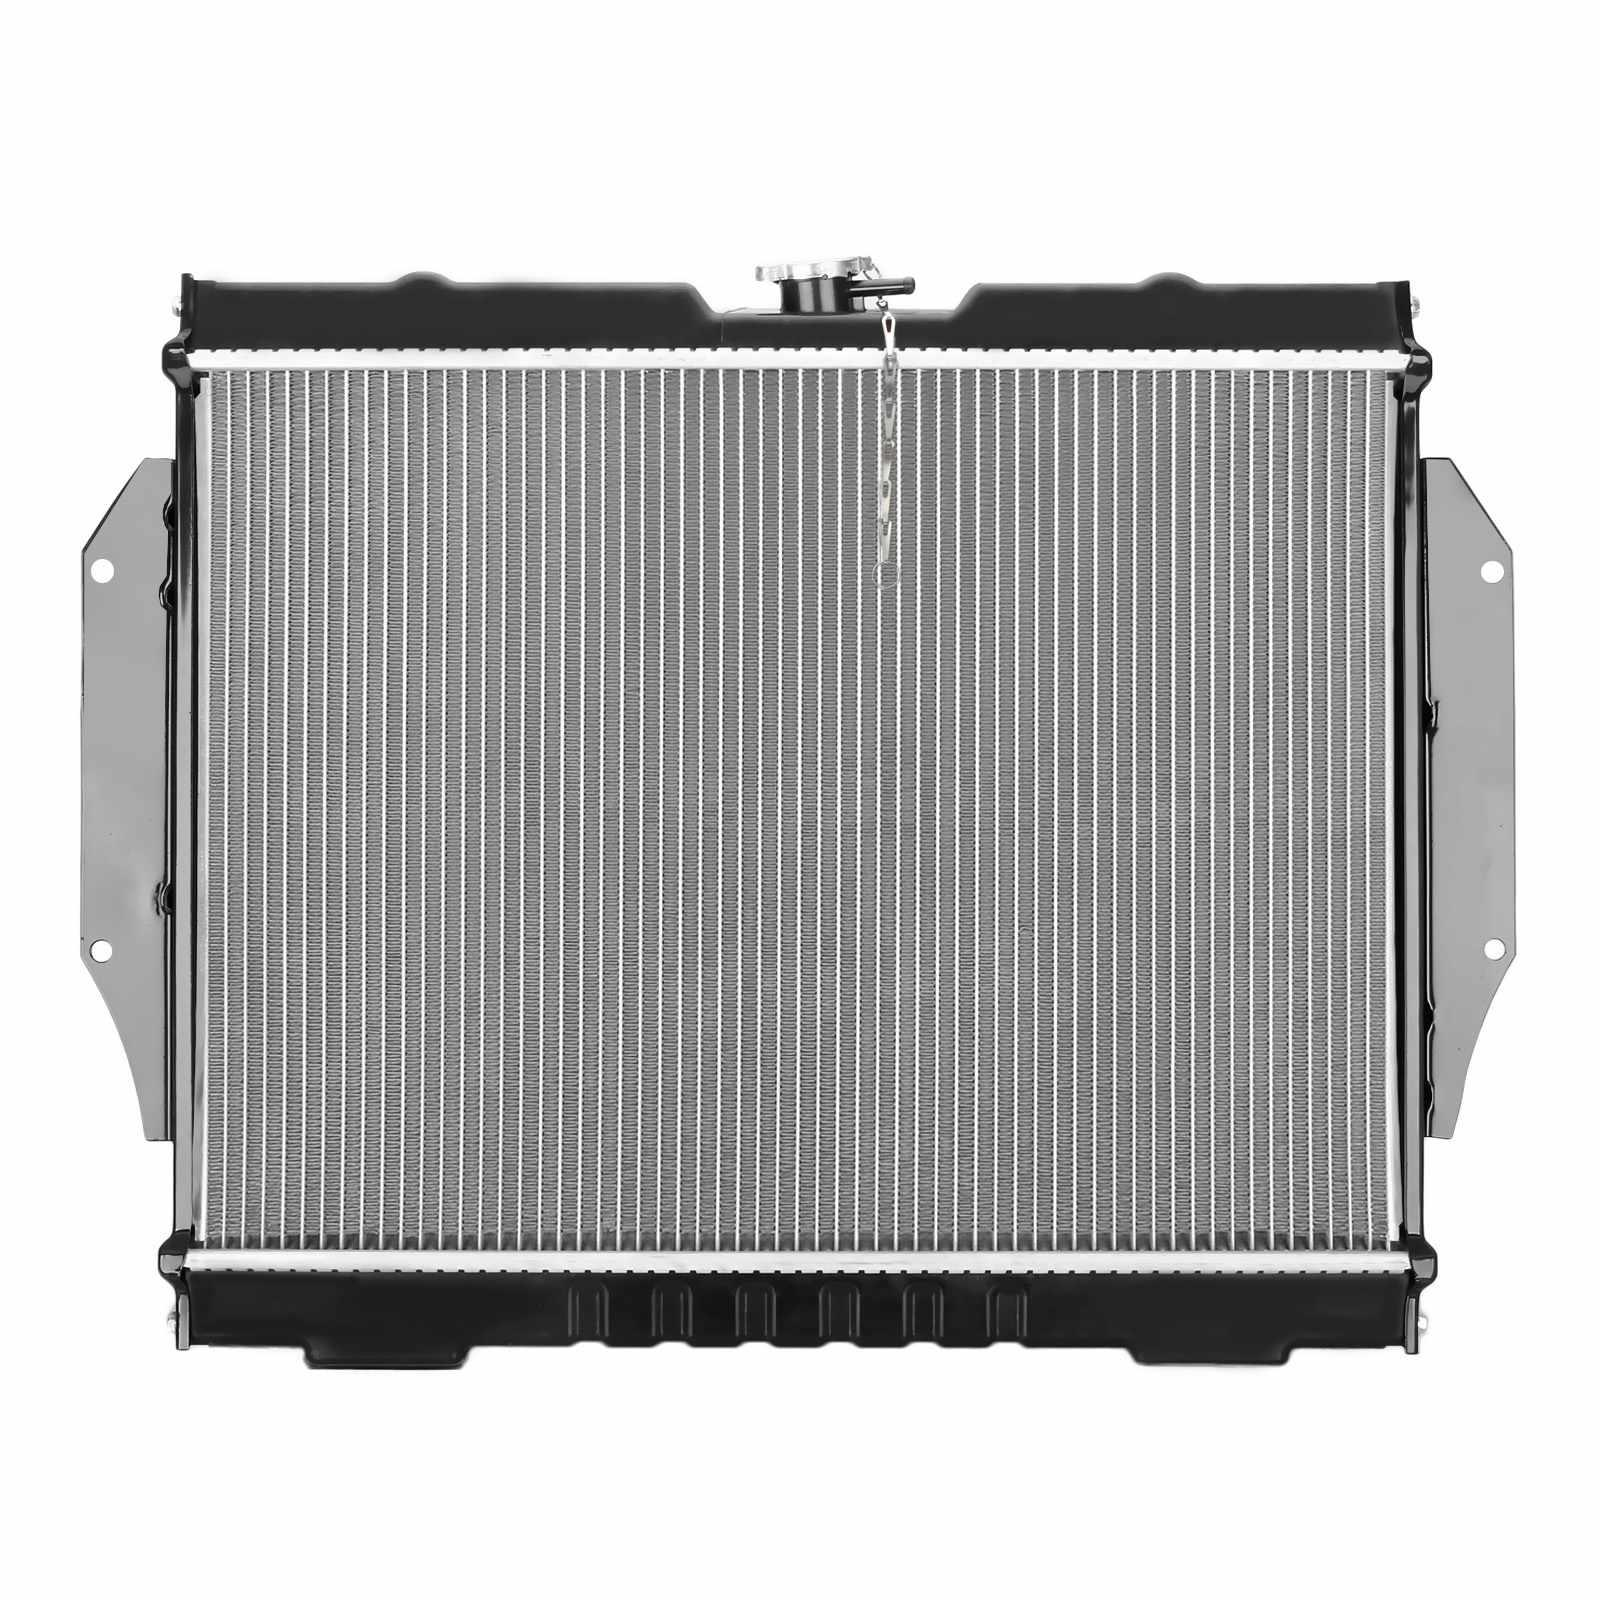 New DPI 2071 Radiator For Mitsubishi Montero 3.0L 1995 1996 Automatic / Manual